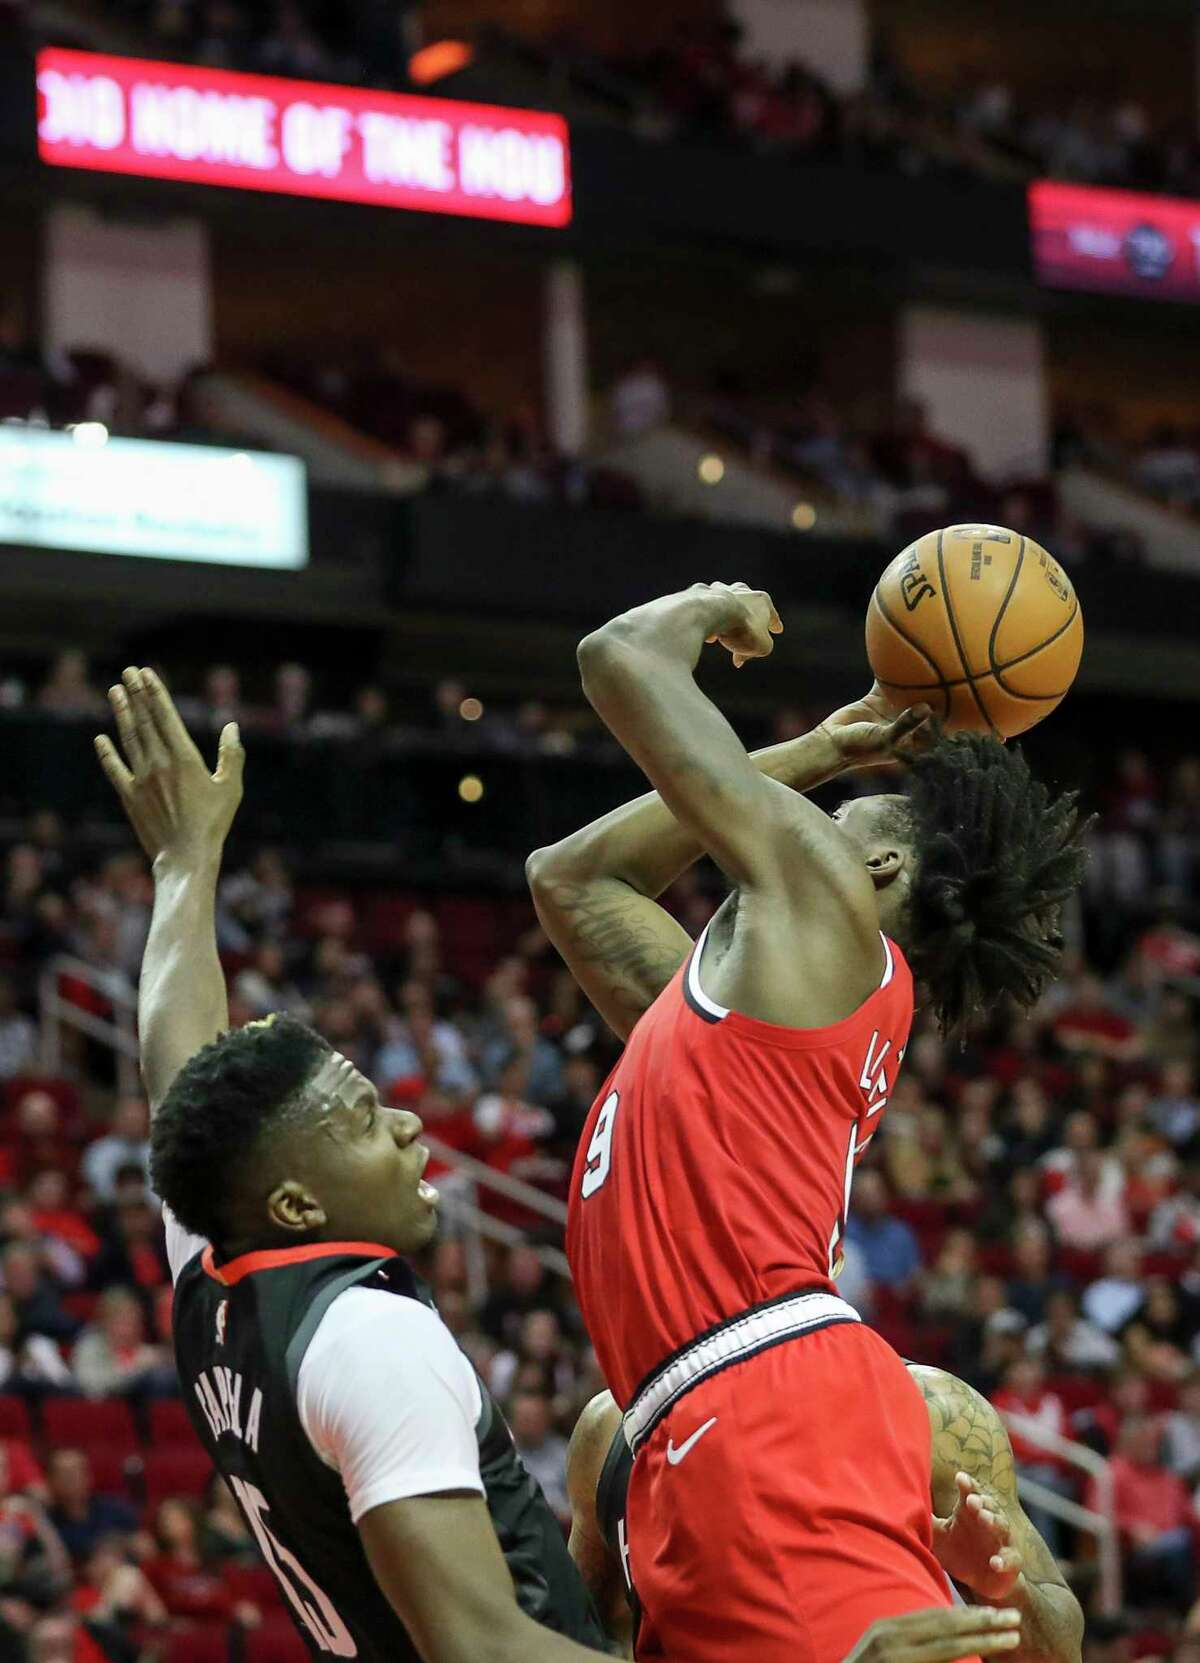 Portland Trail Blazers forward Nassir Little (9) fouls Houston Rockets center Clint Capela (15) during the second quarter of an NBA basketball game at the Toyota Center on Monday, Nov. 18, 2019, in Houston.